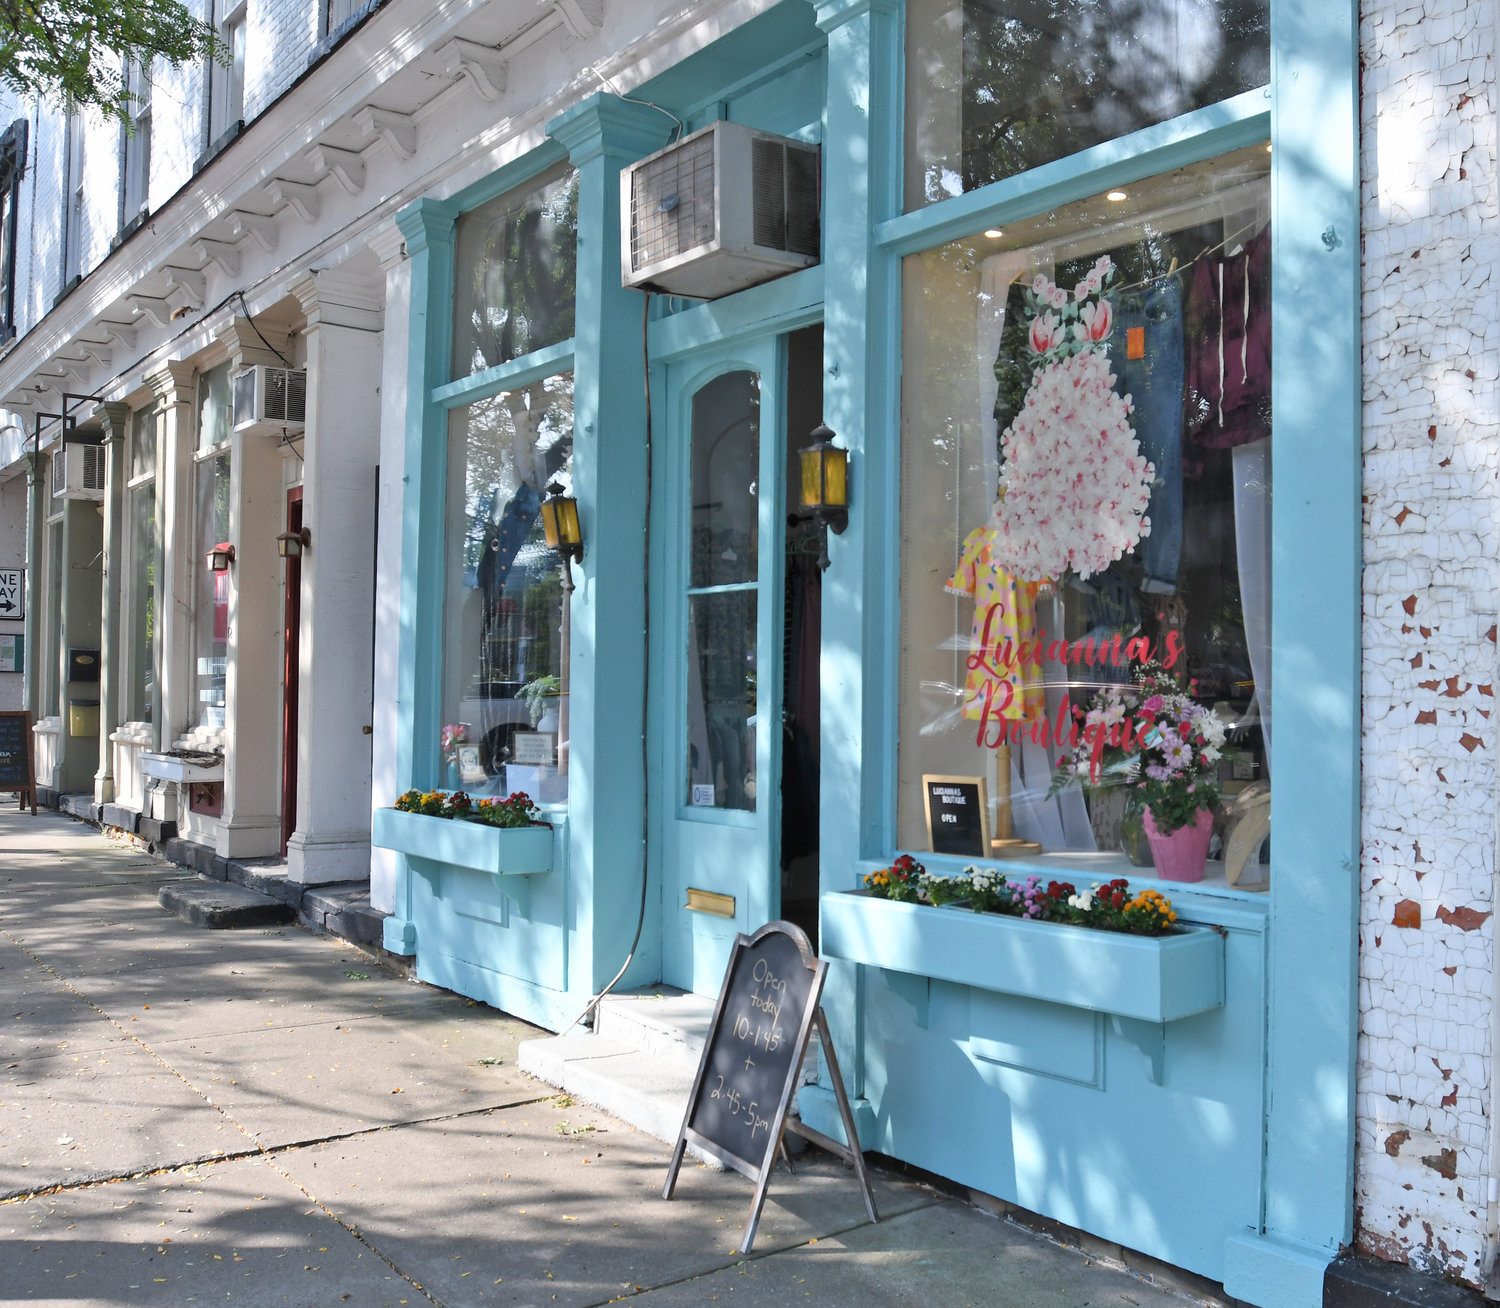 SHOPPERS STROLL — Shoppers in the Village of Clinton can now find the new Lucianna's Boutique, a shop specializing in women's and children's clothing, accessories, housewares and crafts, during their shopping excursions on West Park Row.